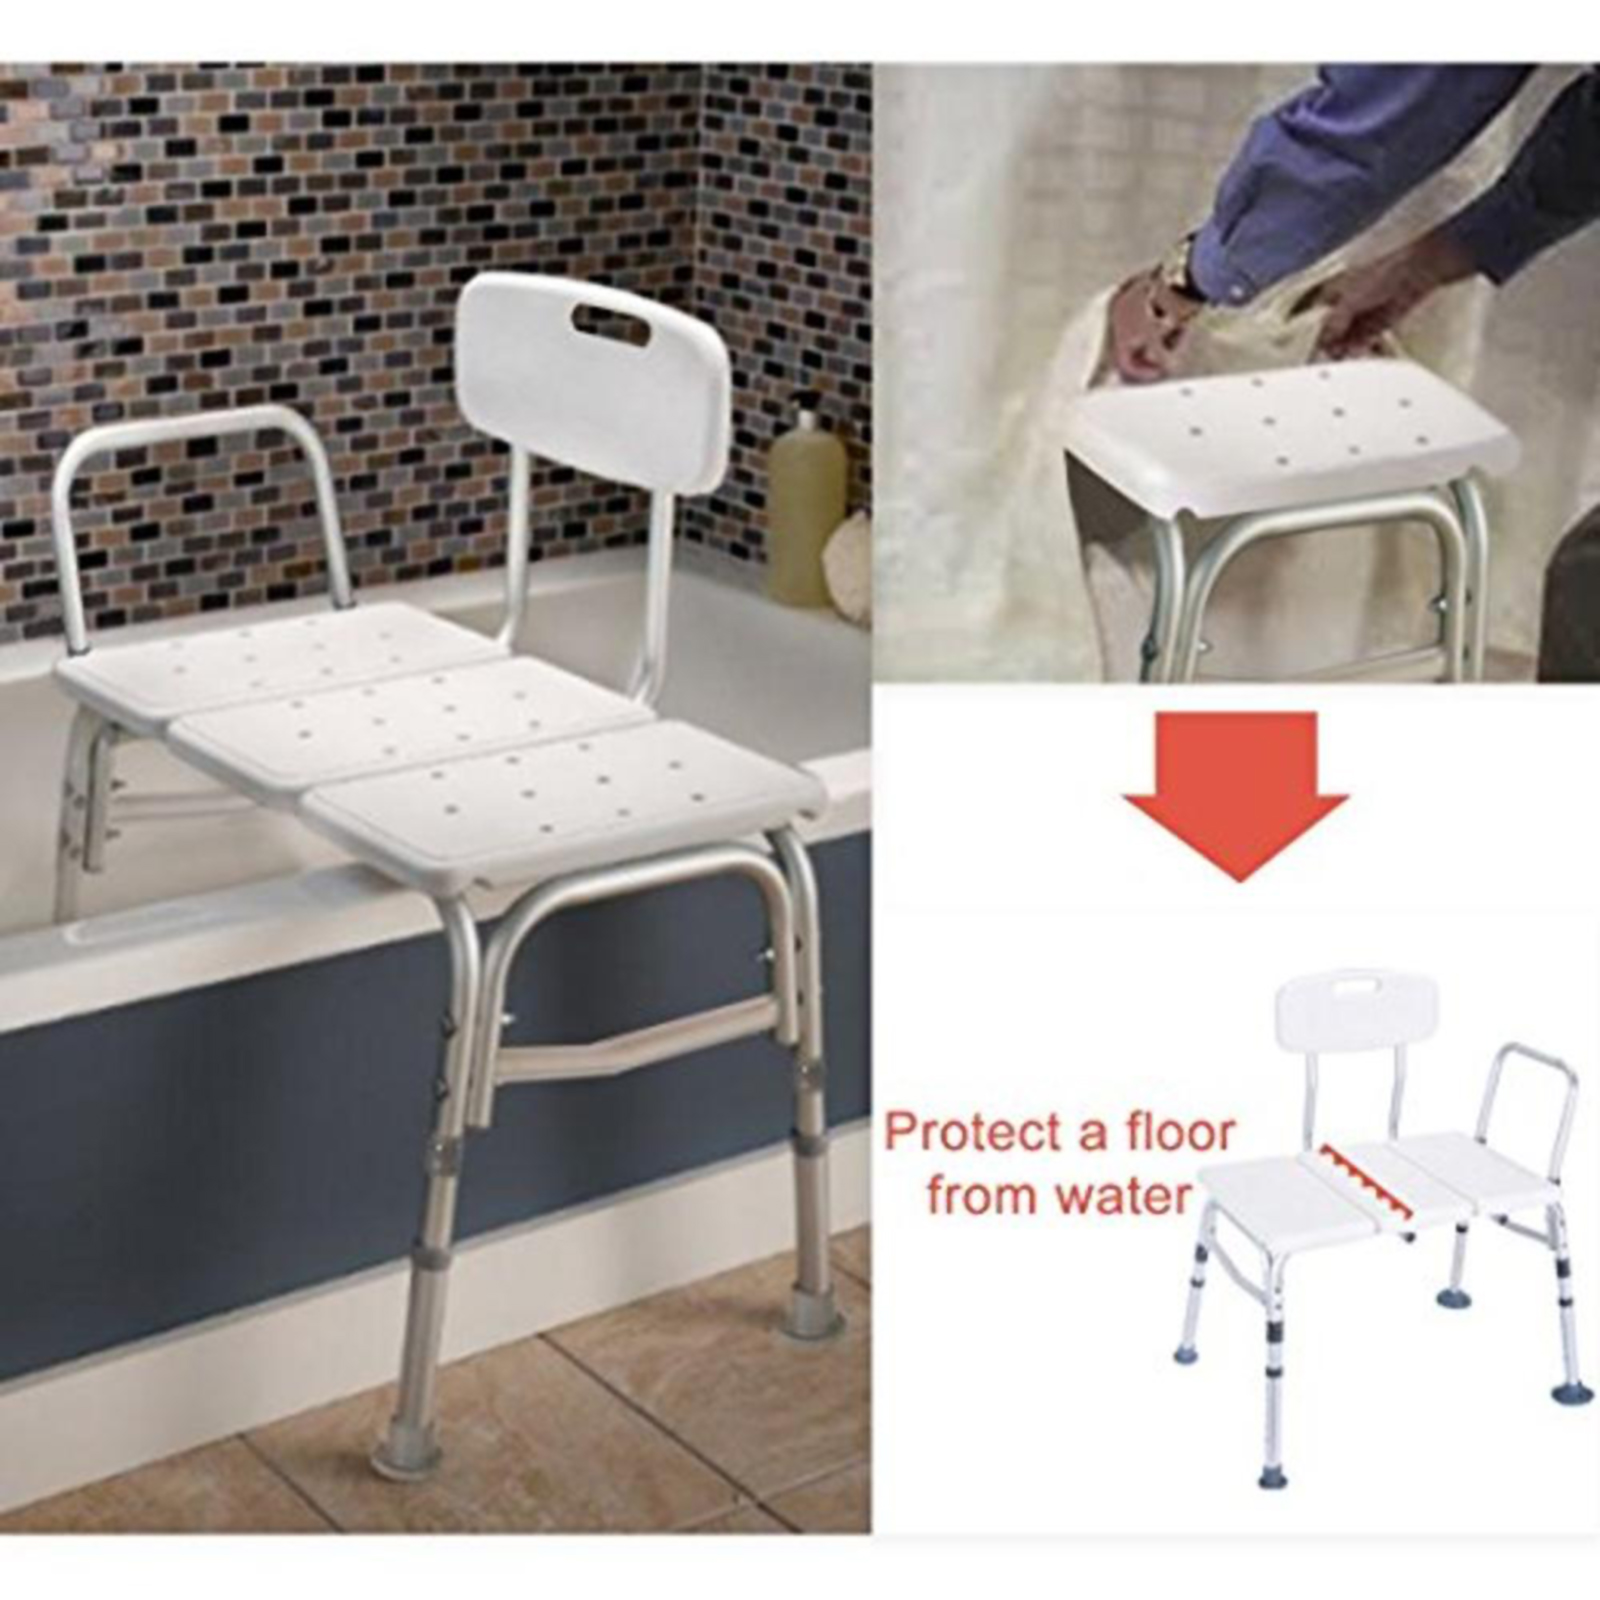 difference between shower chair and tub transfer bench swivel national bookstore winado bath with backrest sears marketplace